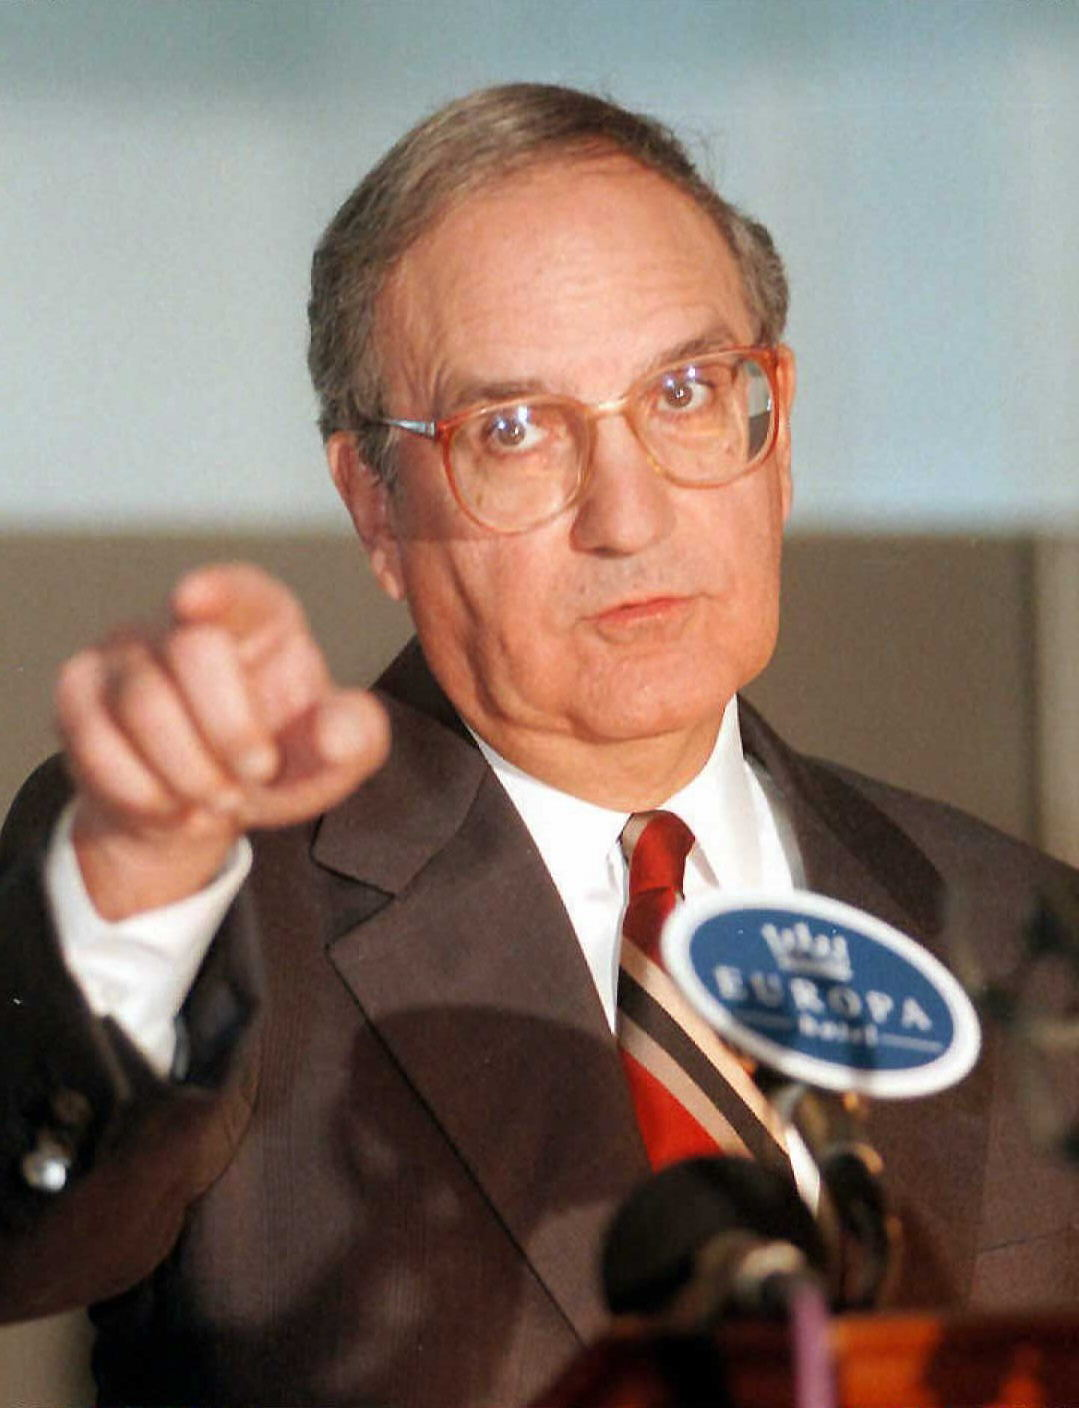 George Mitchell served as the Senate Majority leader between January 3, 1989 to January 3, 1995.<br />